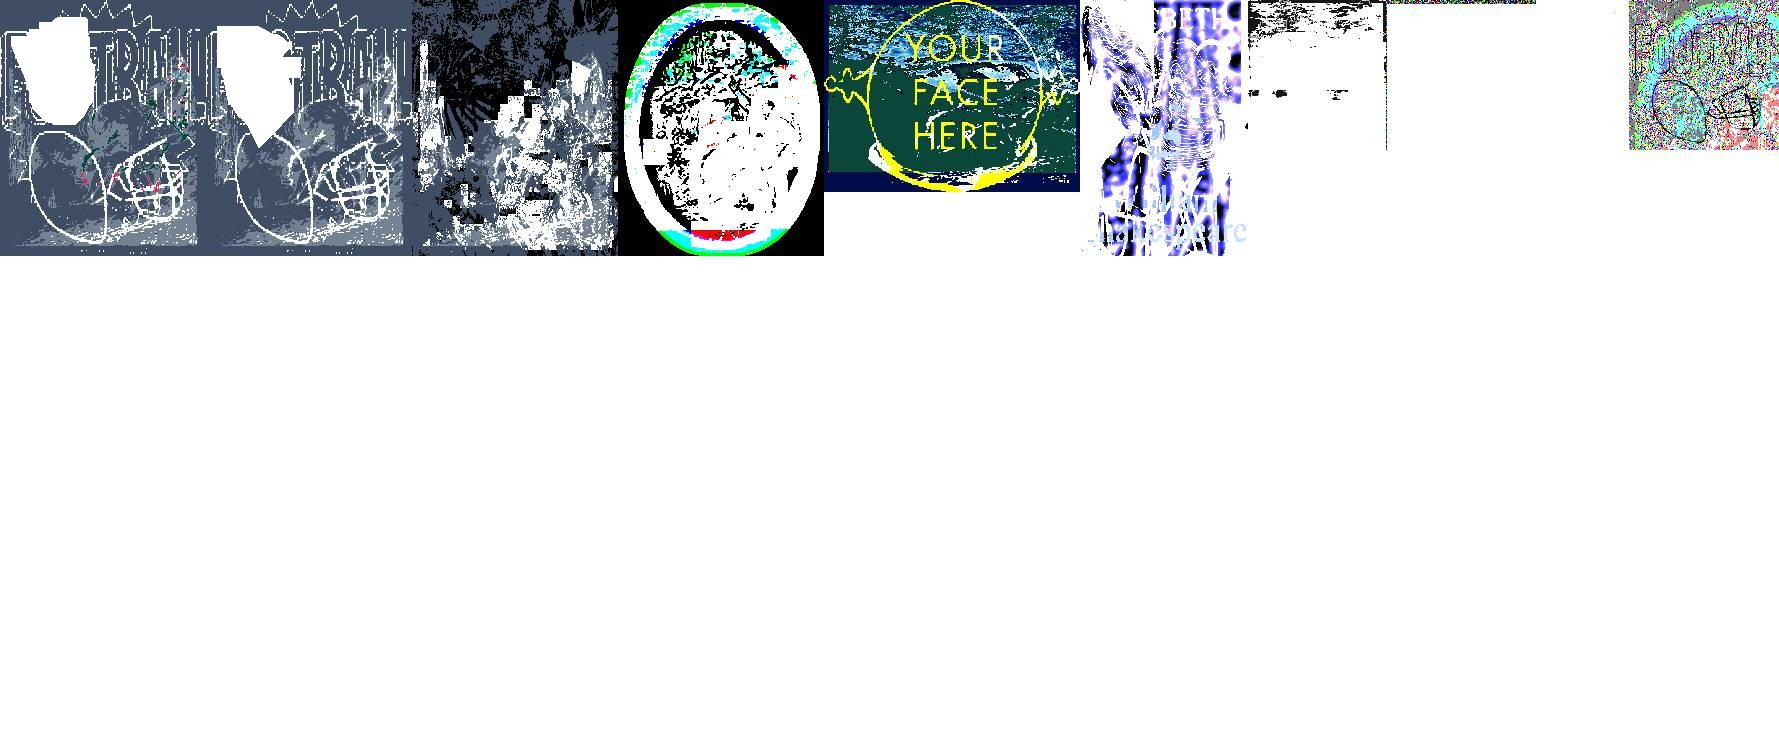 literature_and_fiction,_text,_helmet--23971-76659-97087.jpg